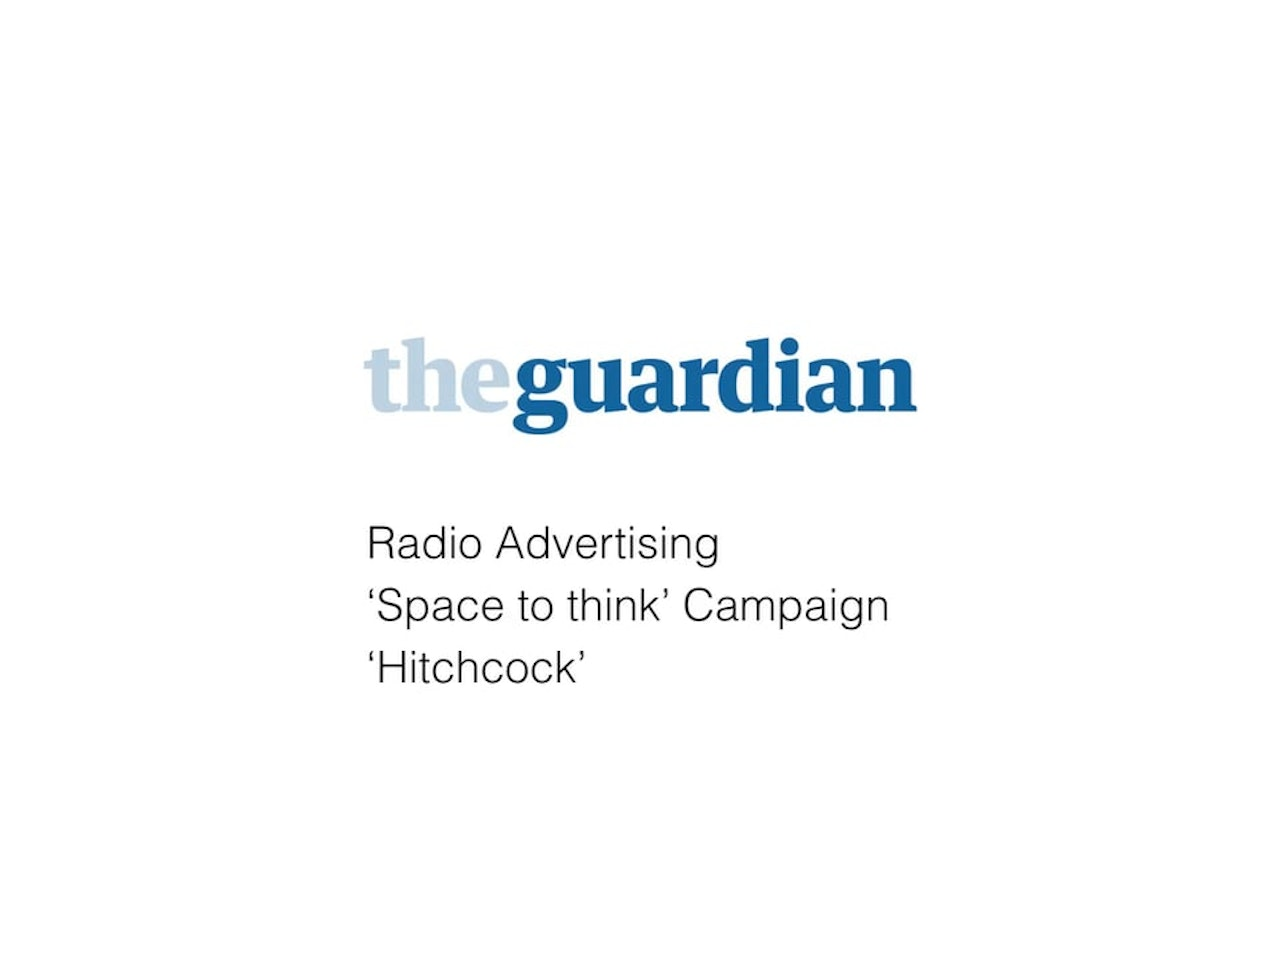 The Guardian - 'Space to think' radio campaign.